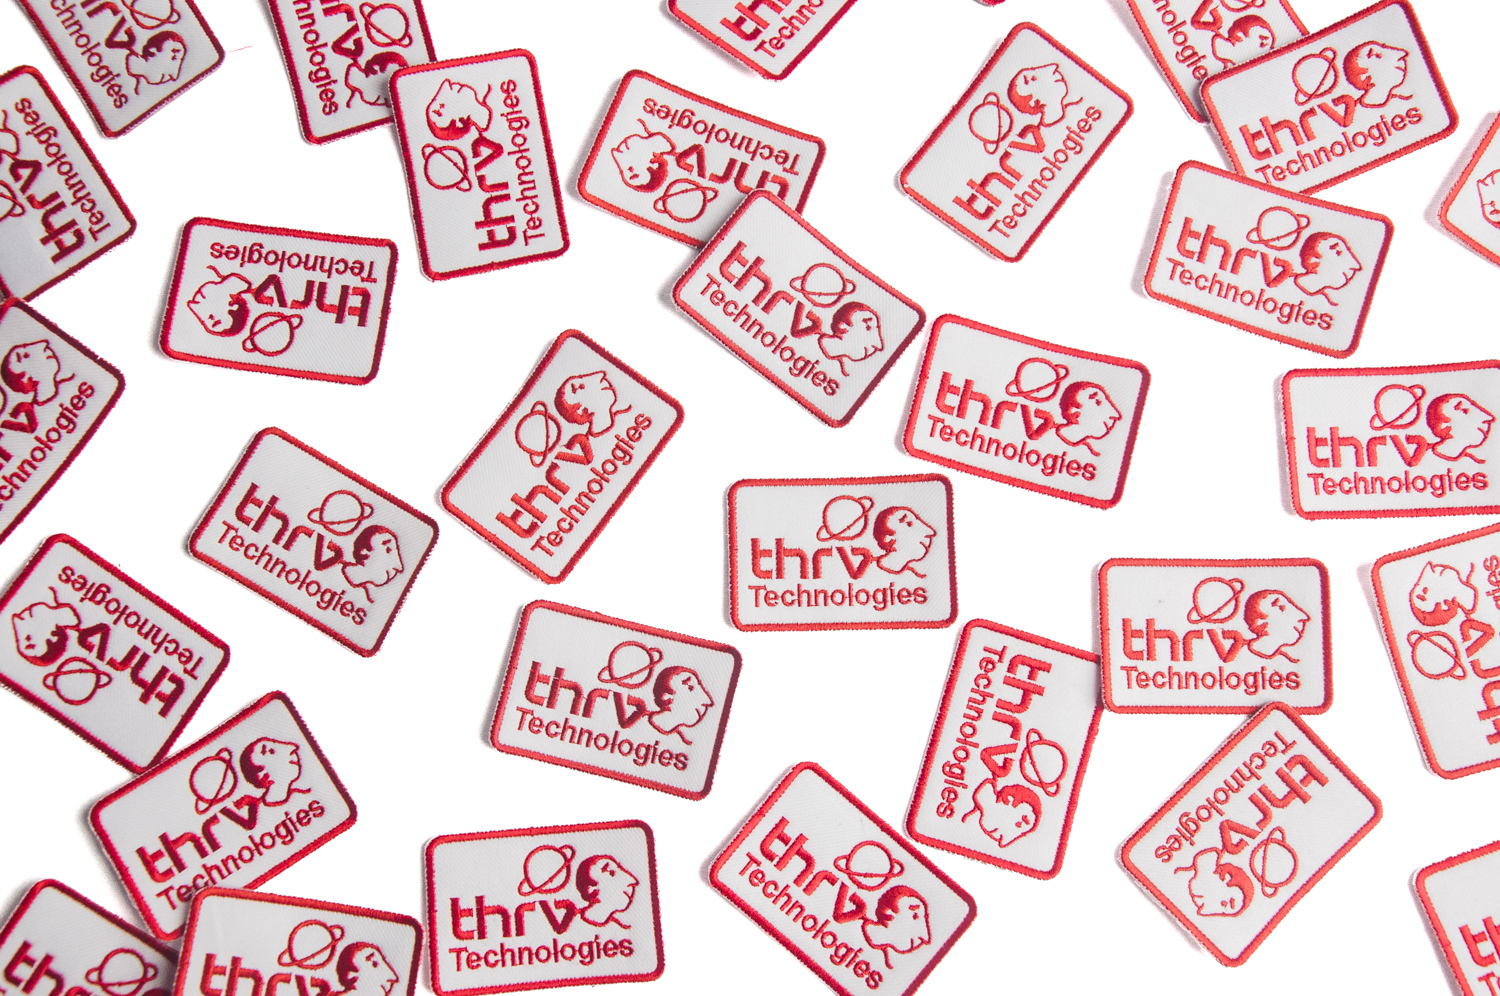 THRV Technologies patches